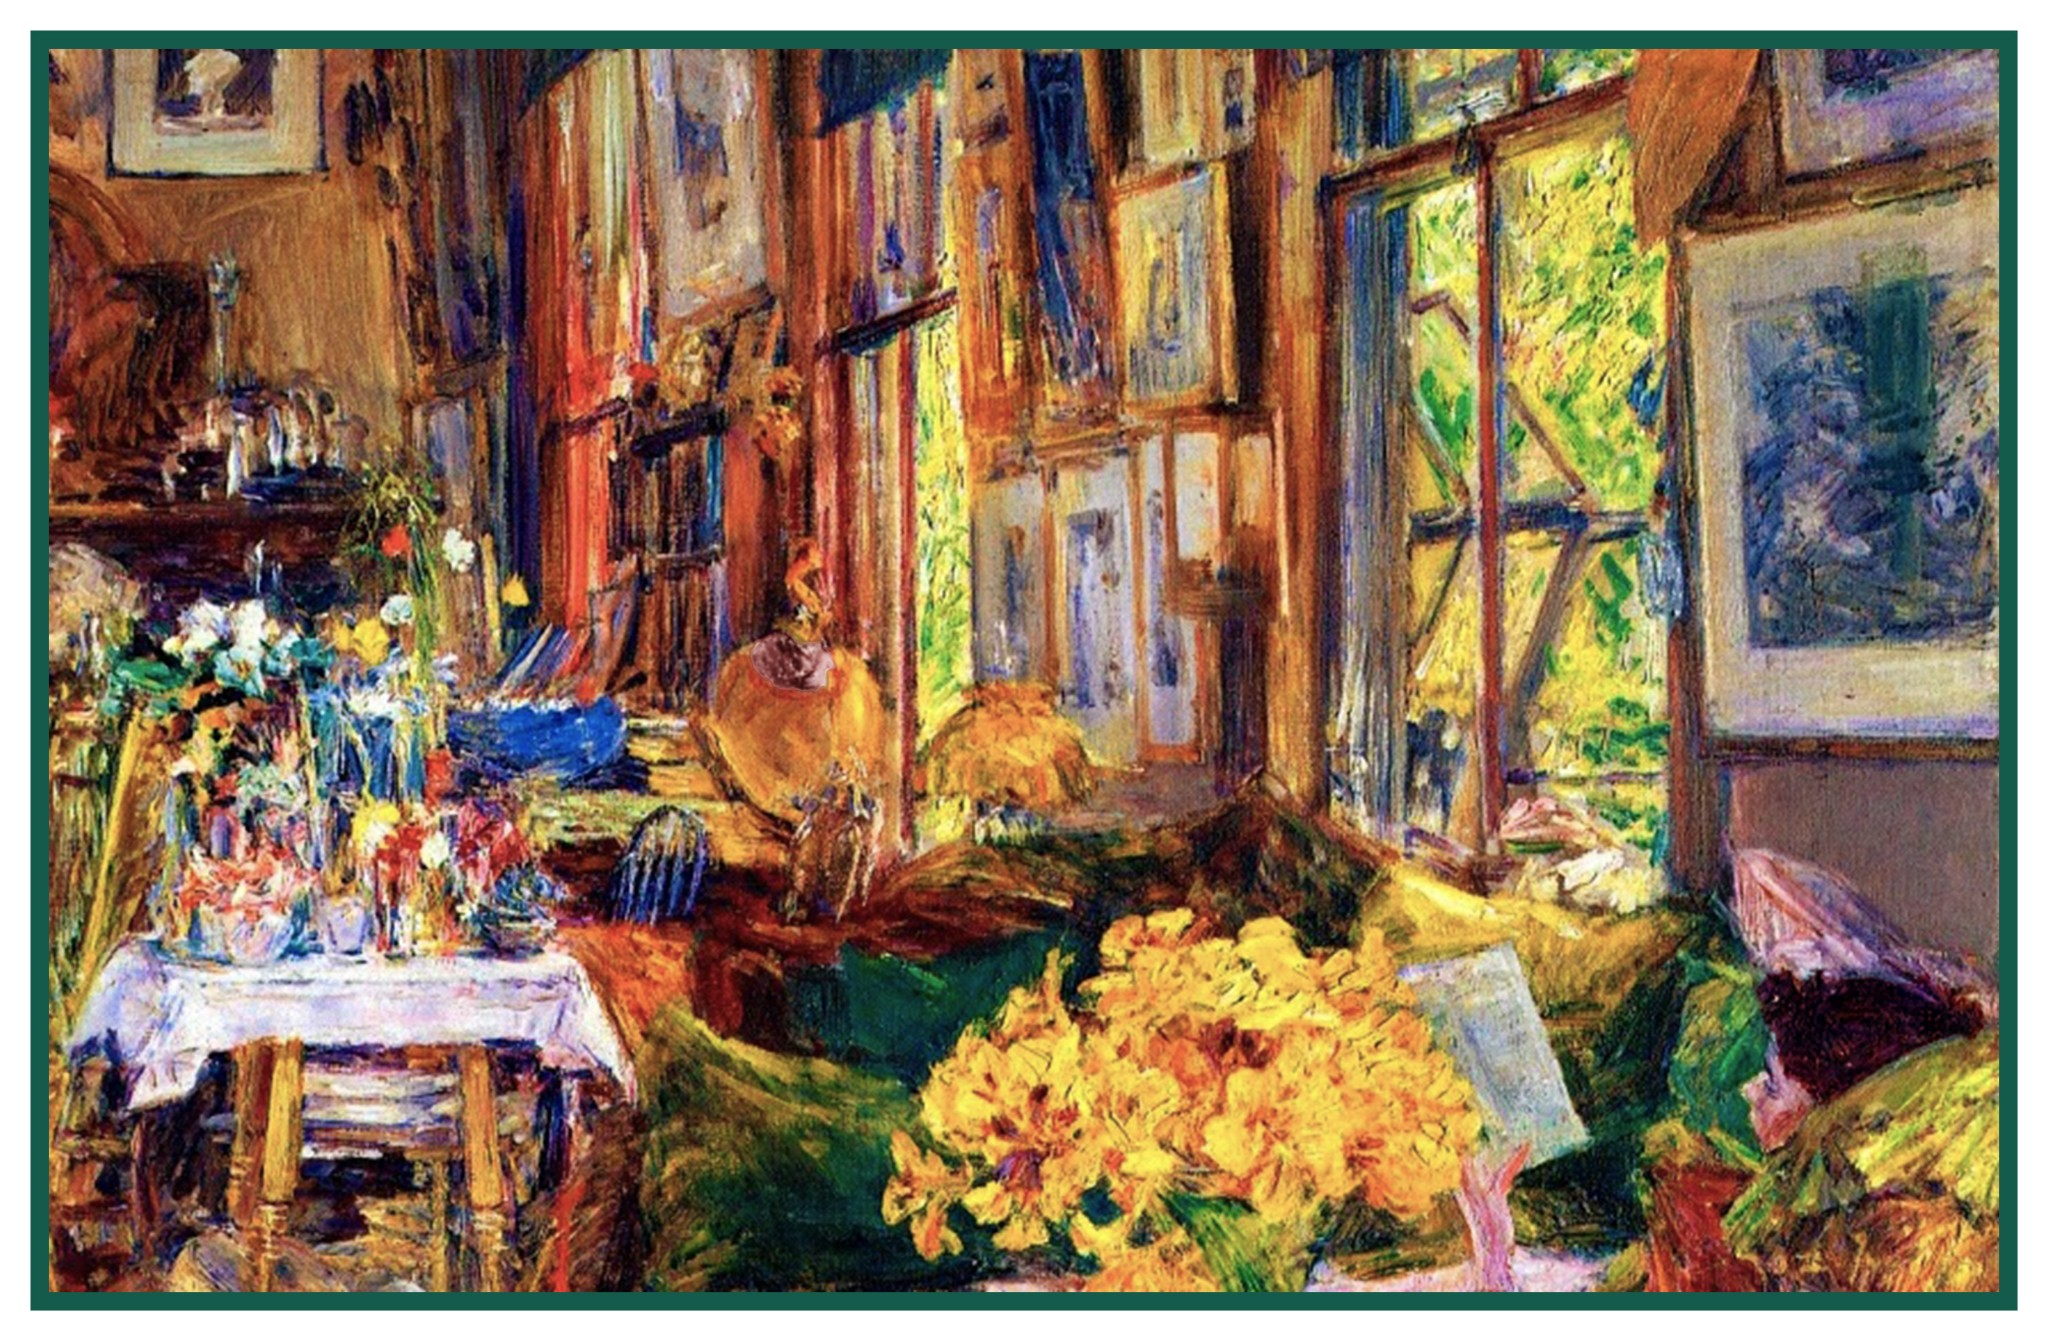 ImpressionistChilde Hassam Room of Flowers Counted Cross